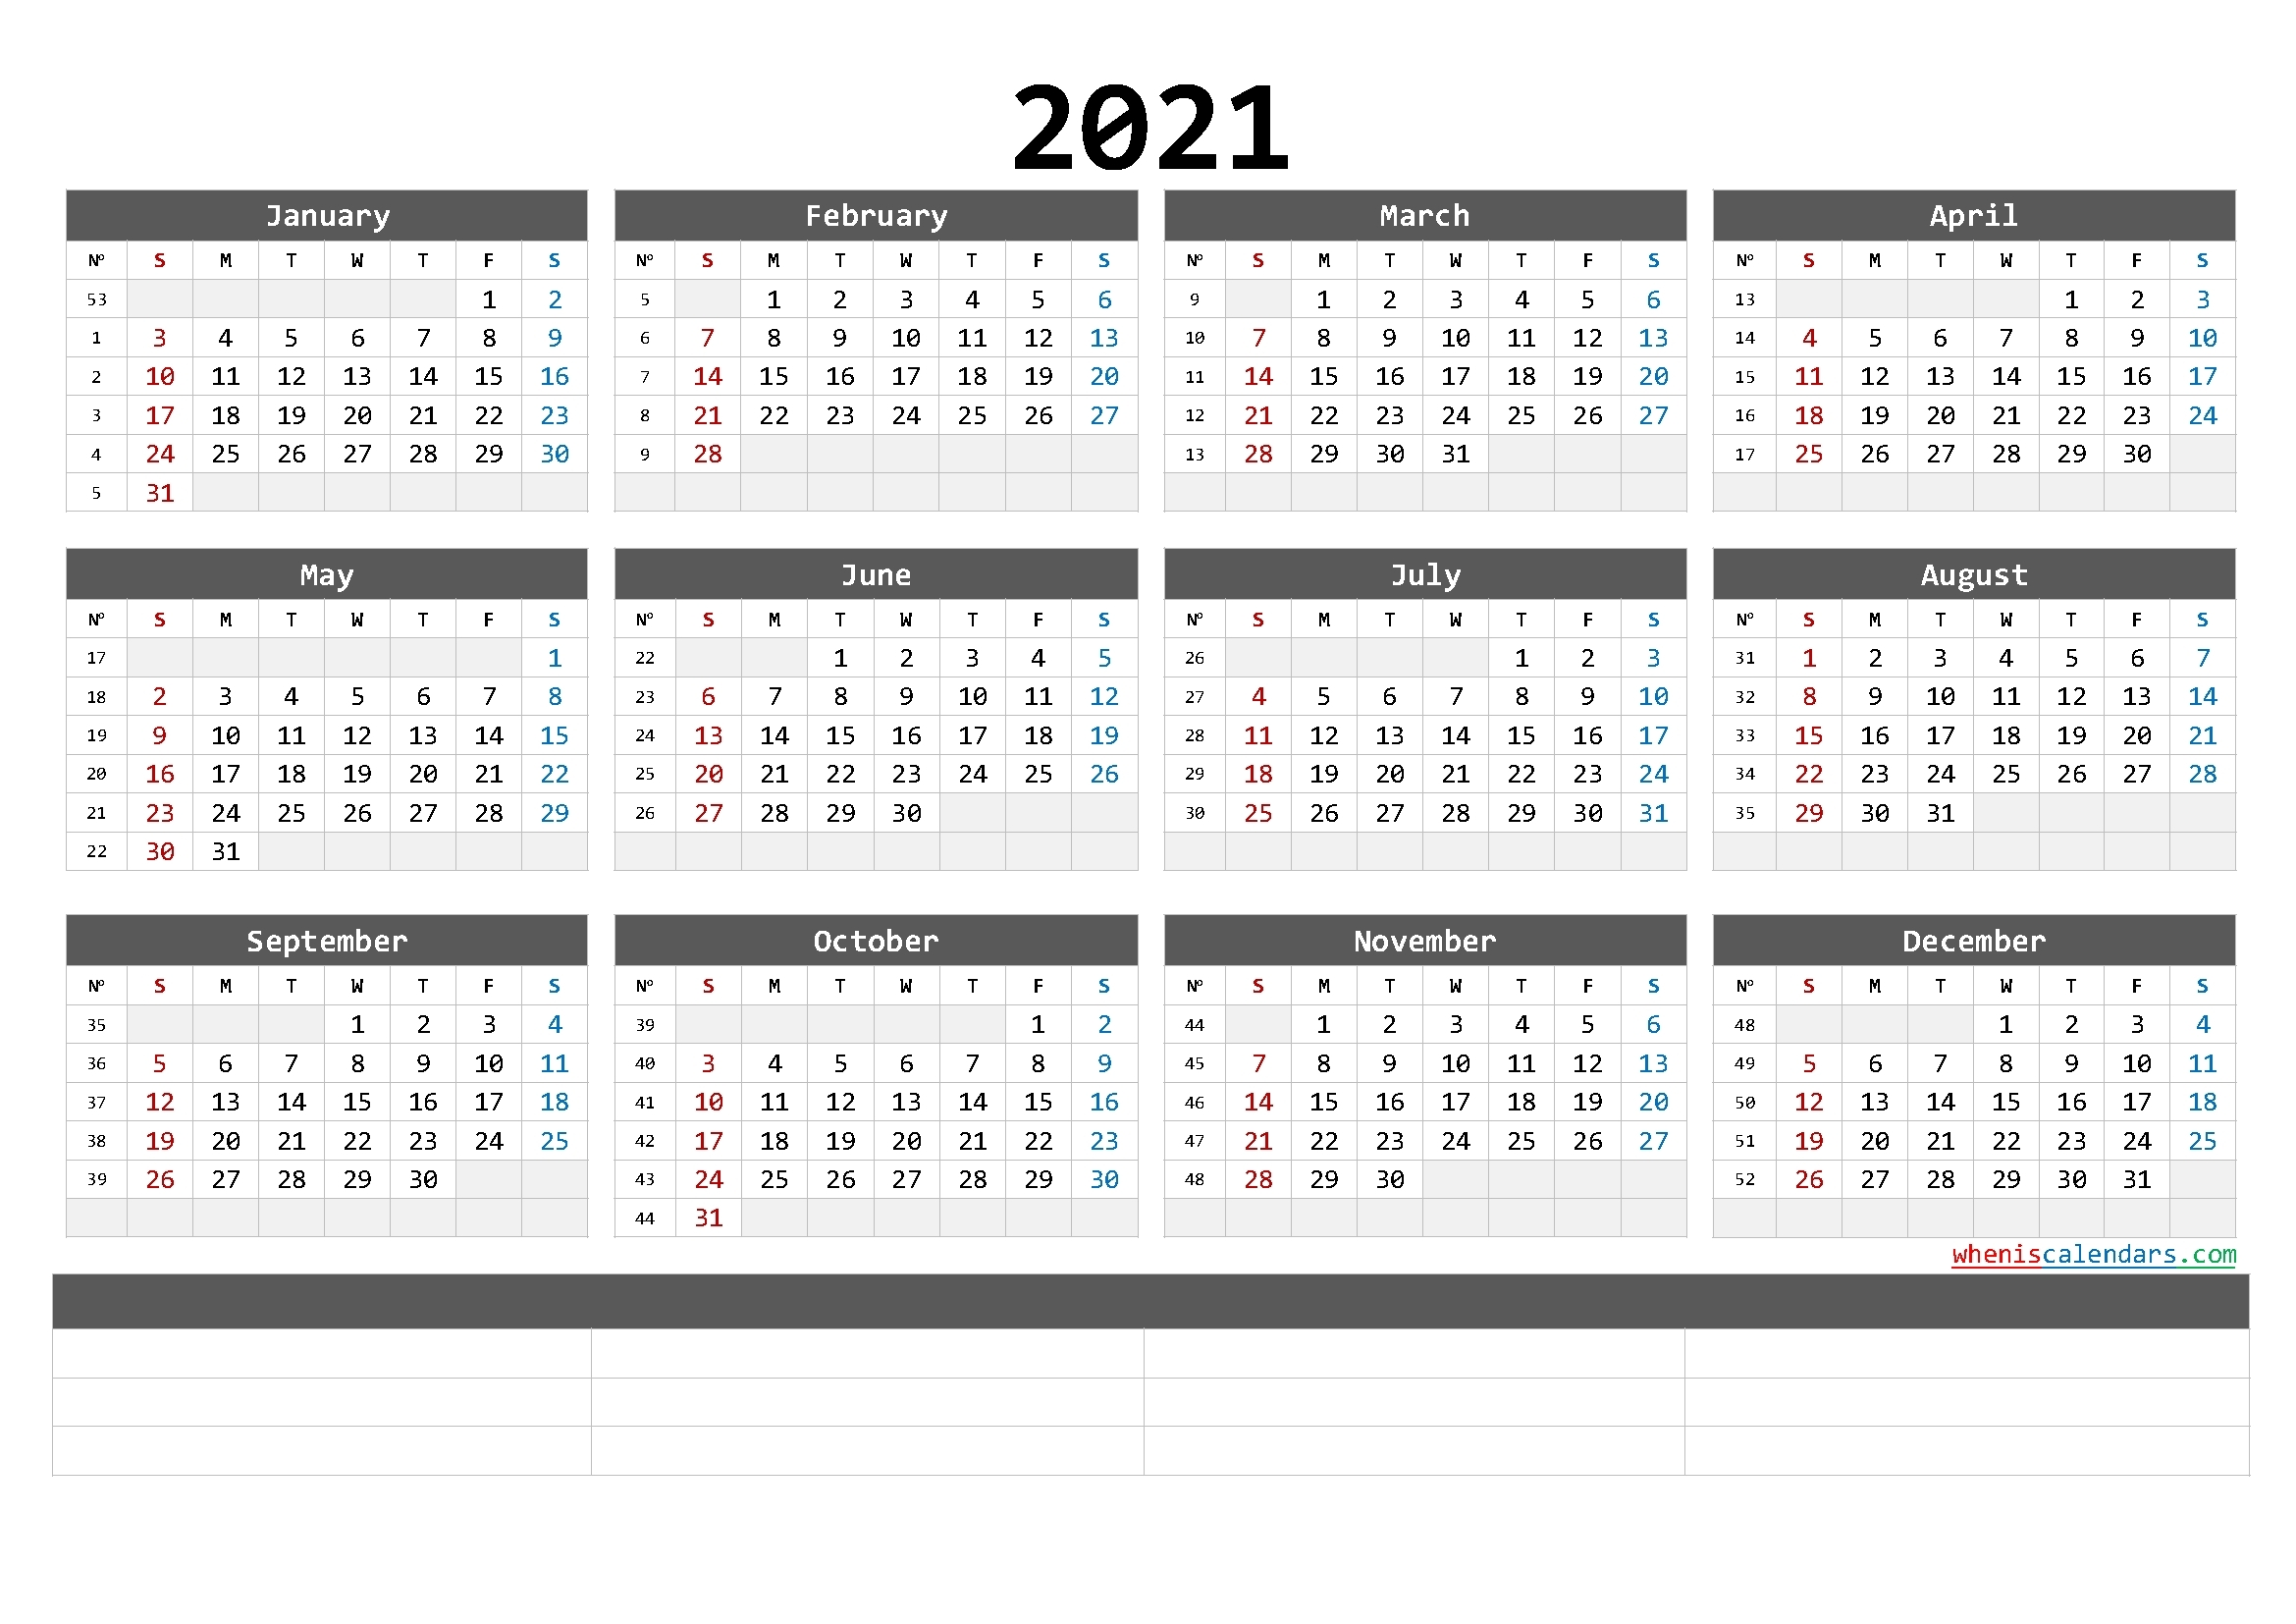 Free Printable 2021 Yearly Calendar With Week Numbers (6 Templates)